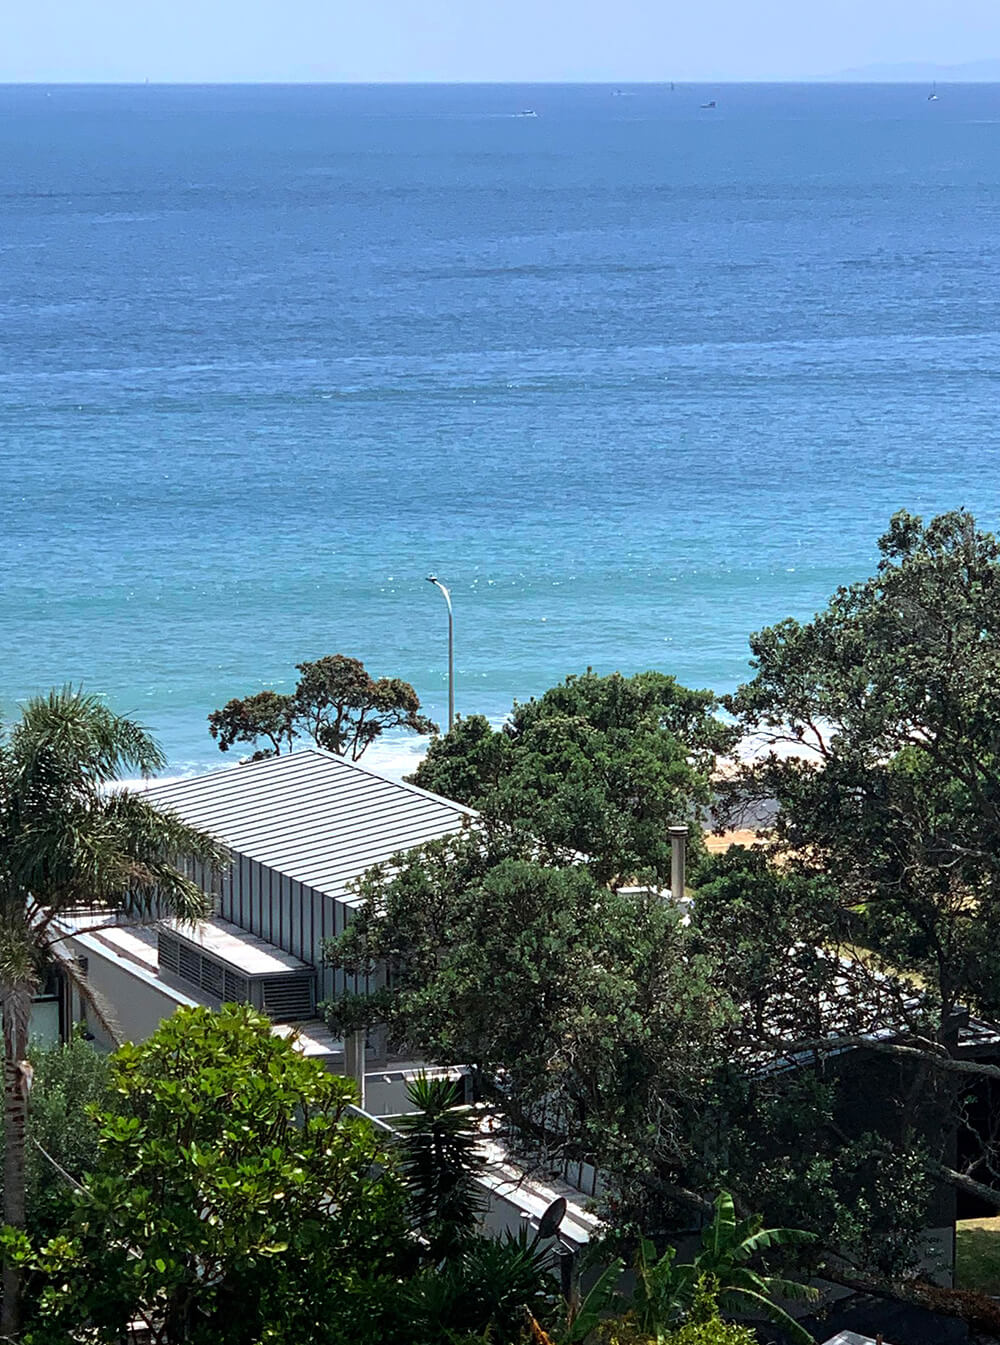 Overlooking the Onetangi beach house onto the ocean